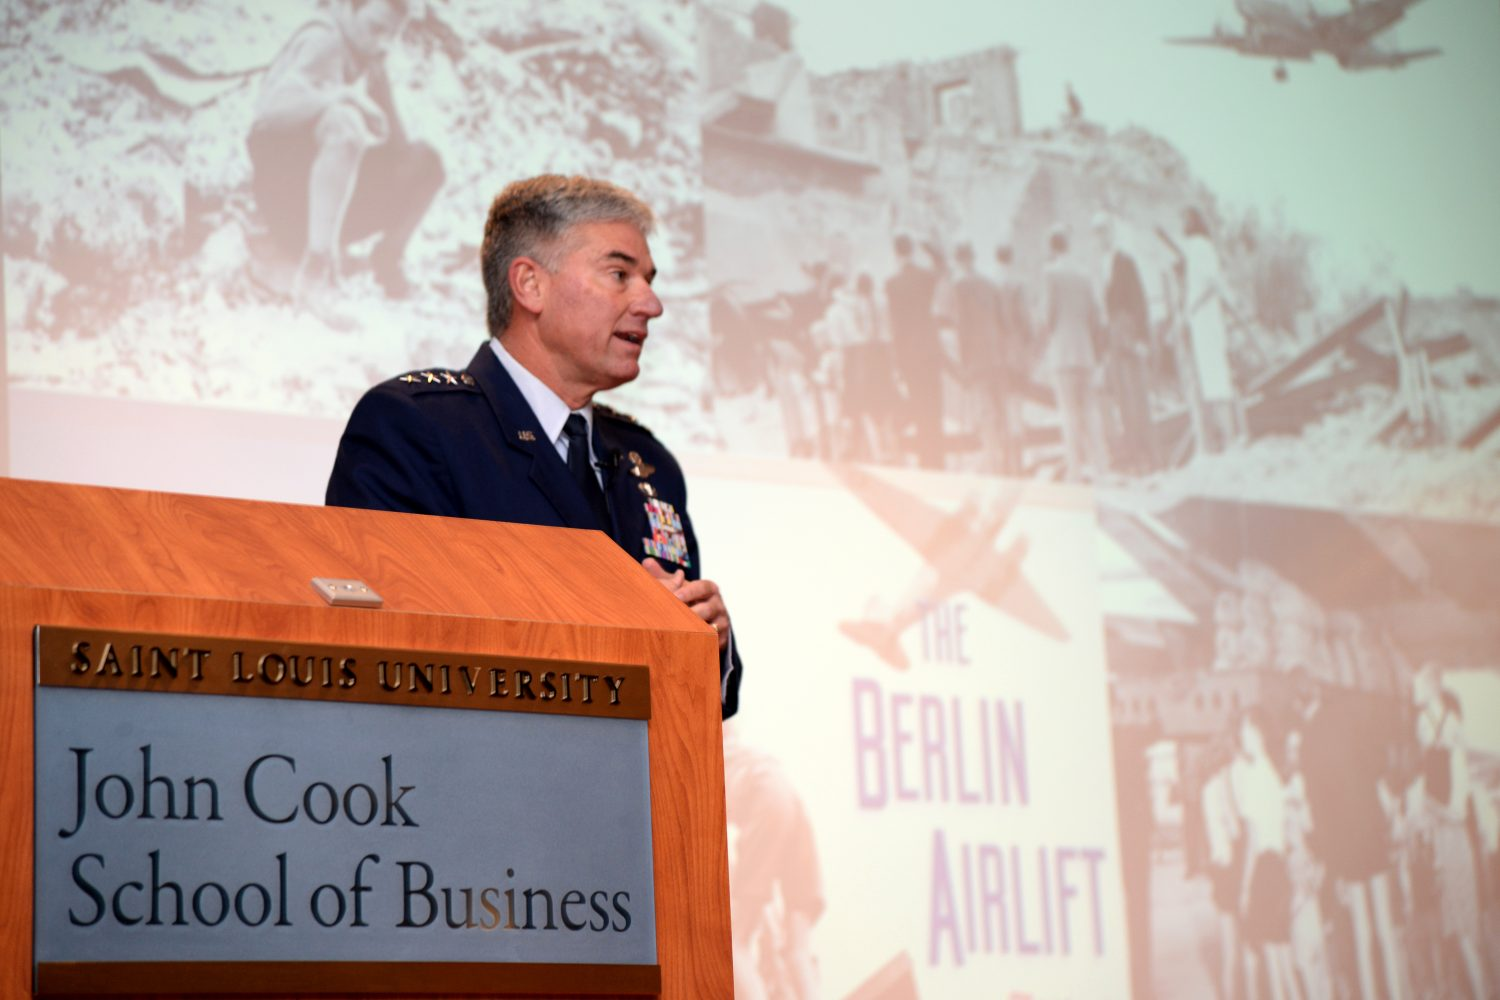 Lt.+Gen.+Sam+Cox%2C+18th+Air+Force+commander%2C+talks+about+the+Berlin+Airlift+%22Candy+Bomber%22+and+his+role+in+bringing+hope+to+the+people+of+Berlin+as+part+of+his+lecture+at+the+Dean%27s+Breakfast+at+Saint+Louis+University+in+St.+Louis%2C+Missouri%2C+Nov.+10.+Cox+addressed+about+50+business+leaders+and+John+Cook+School+of+Business+alumni+during+the+lecture+and+question-and-answer+session%2C+addressing+topics+such+as+the+role+18th+Air+Force+plays+in+providing+rapid+global+mobility+to+deployed+forces+and+explaining+how+the+services+work+together+to+move+personnel+and+cargo+throughout+the+world.+%28U.S.+Air+Force+photo+by+Master+Sgt.+Thomas+J.+Doscher%29